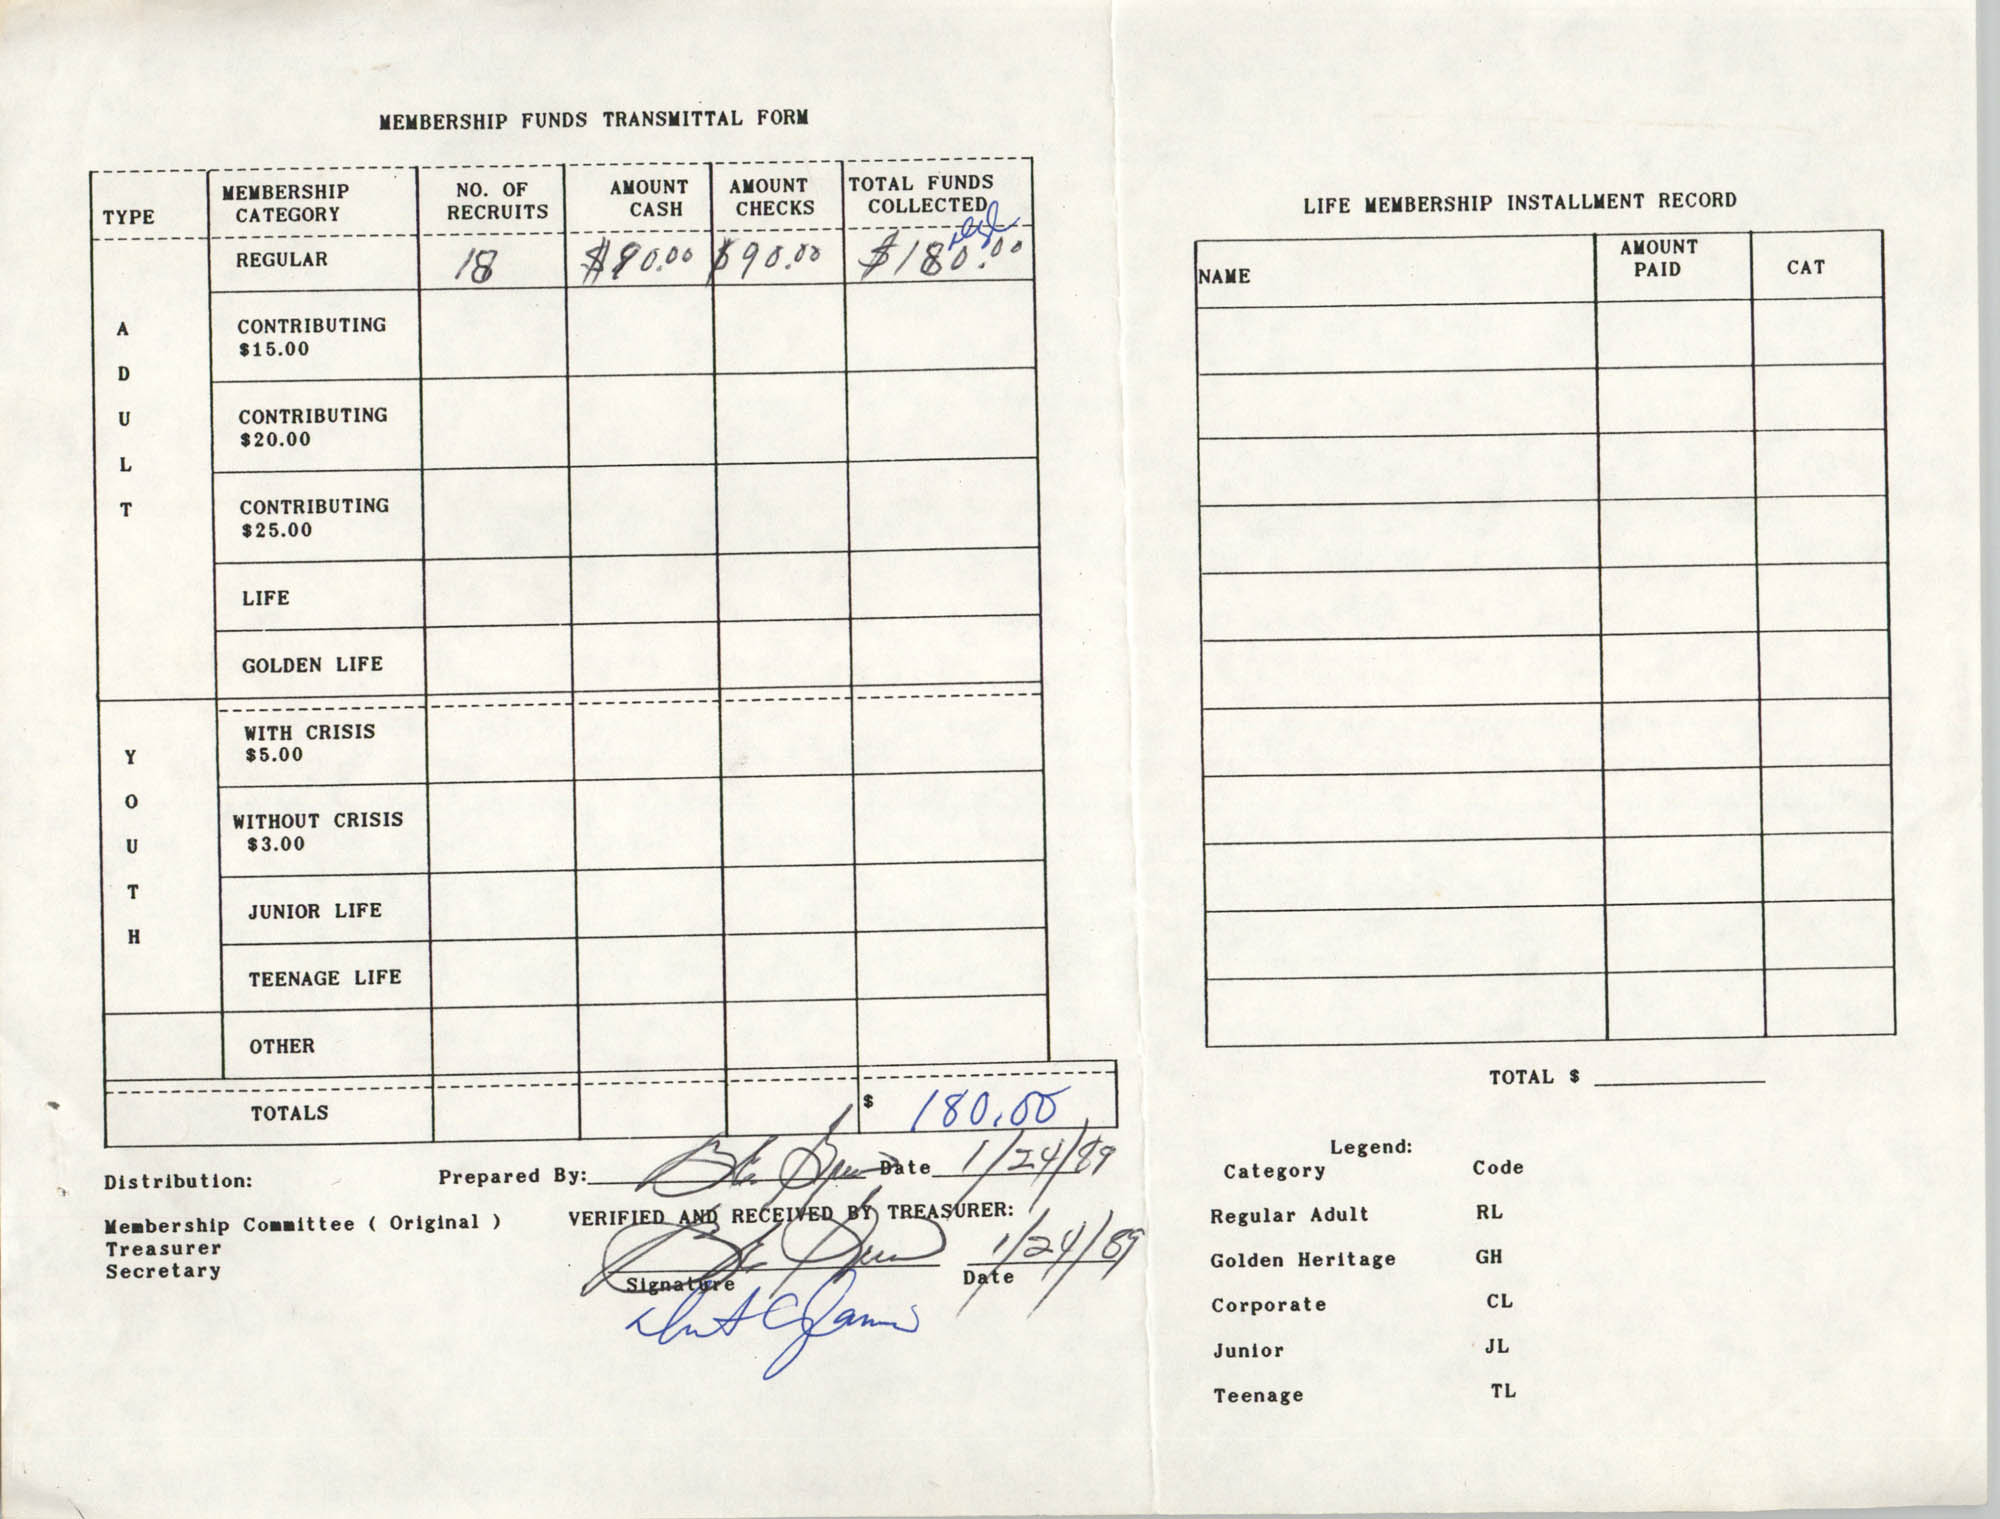 Charleston Branch of the NAACP Funds Transmittal Forms, January 1989, Page 2